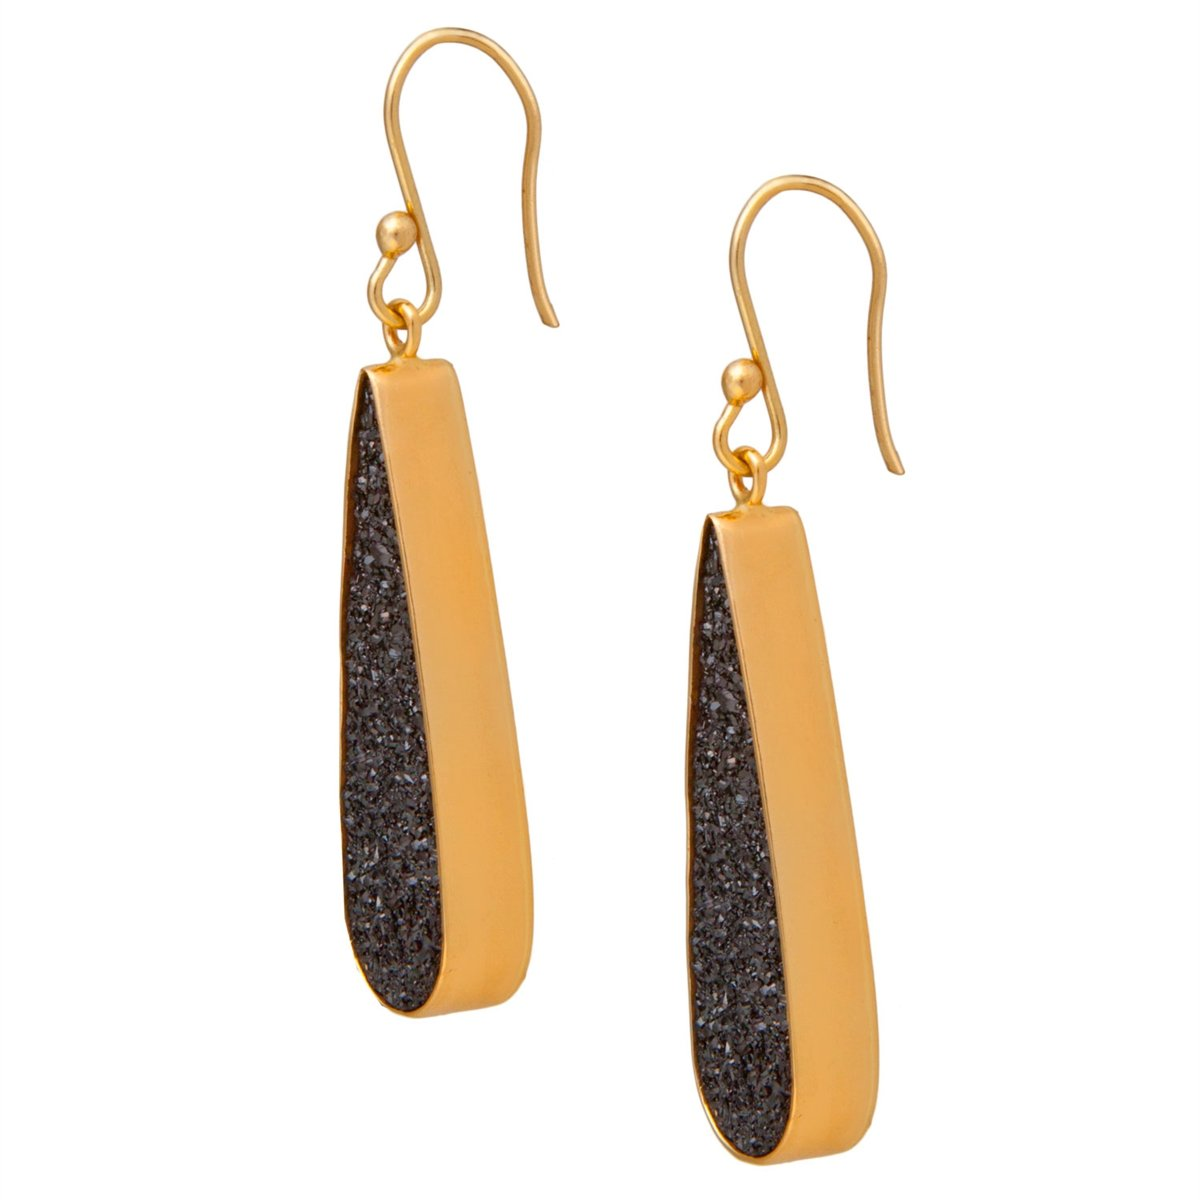 Alchemia Black Druse Teardrop Earrings | Charles Albert Jewelry